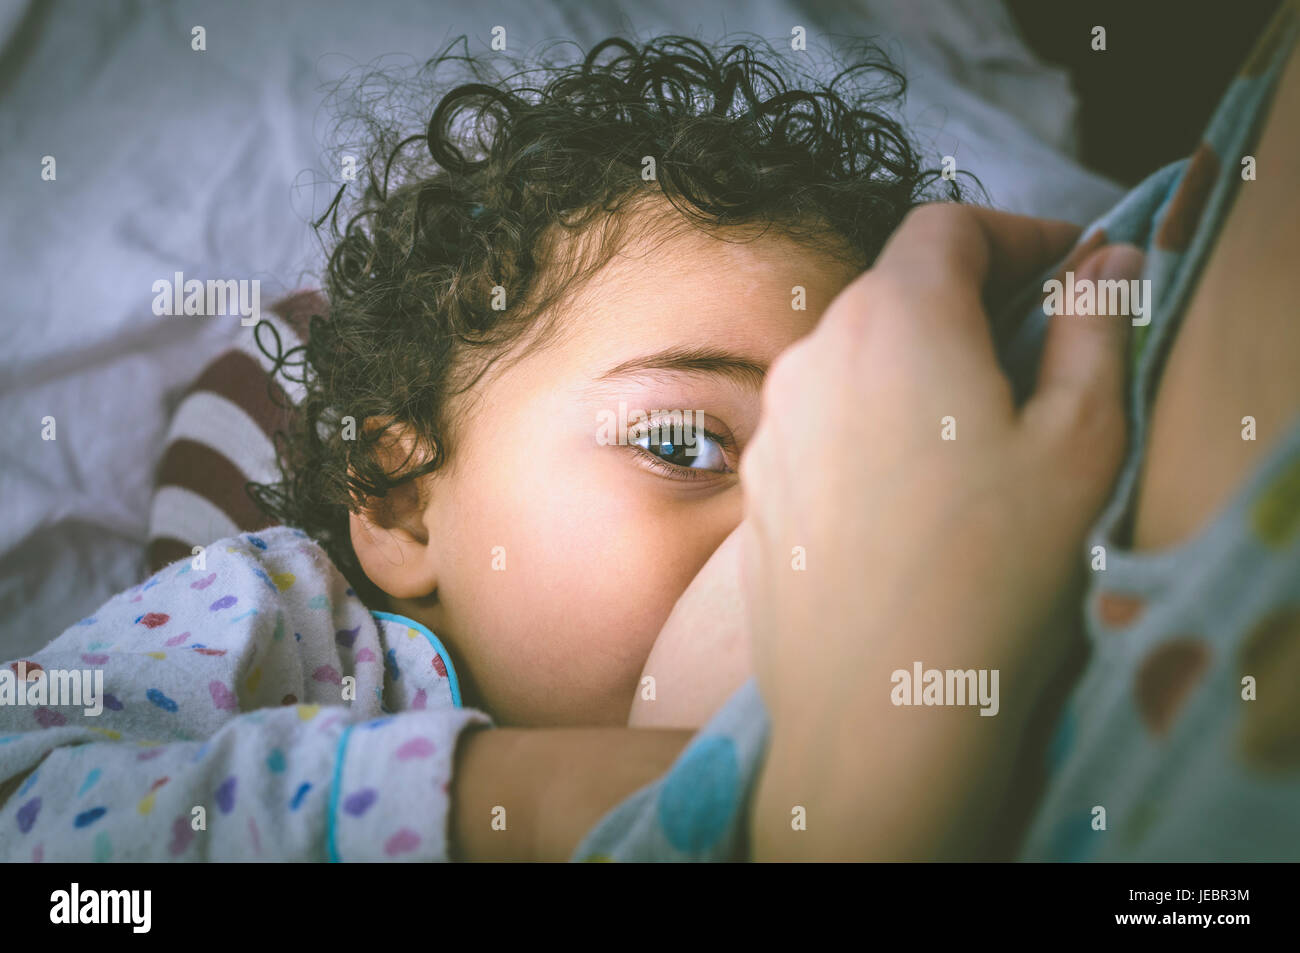 aca78b1bc1f8 Breastfeeding Stock Photos   Breastfeeding Stock Images - Alamy